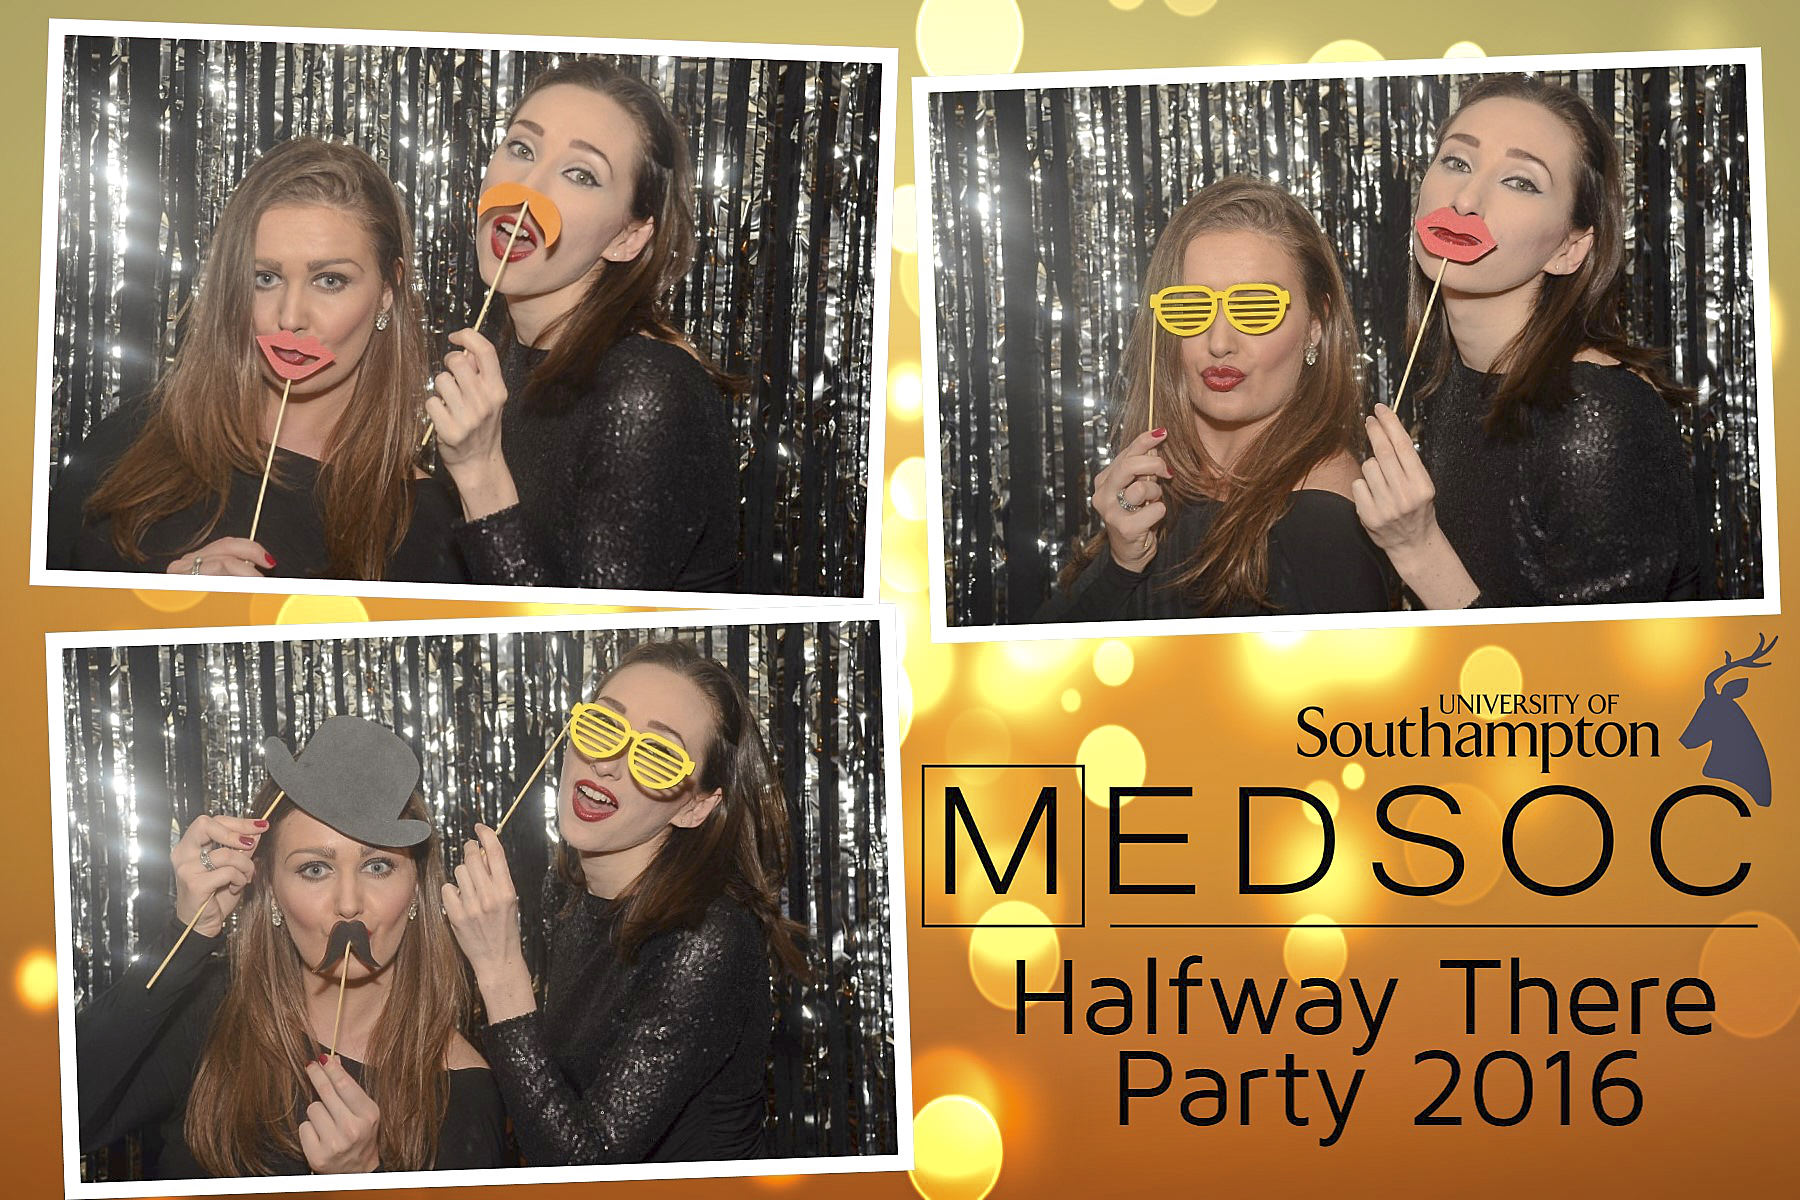 MedSoc Halfway There Party 2016 DS224809.jpg